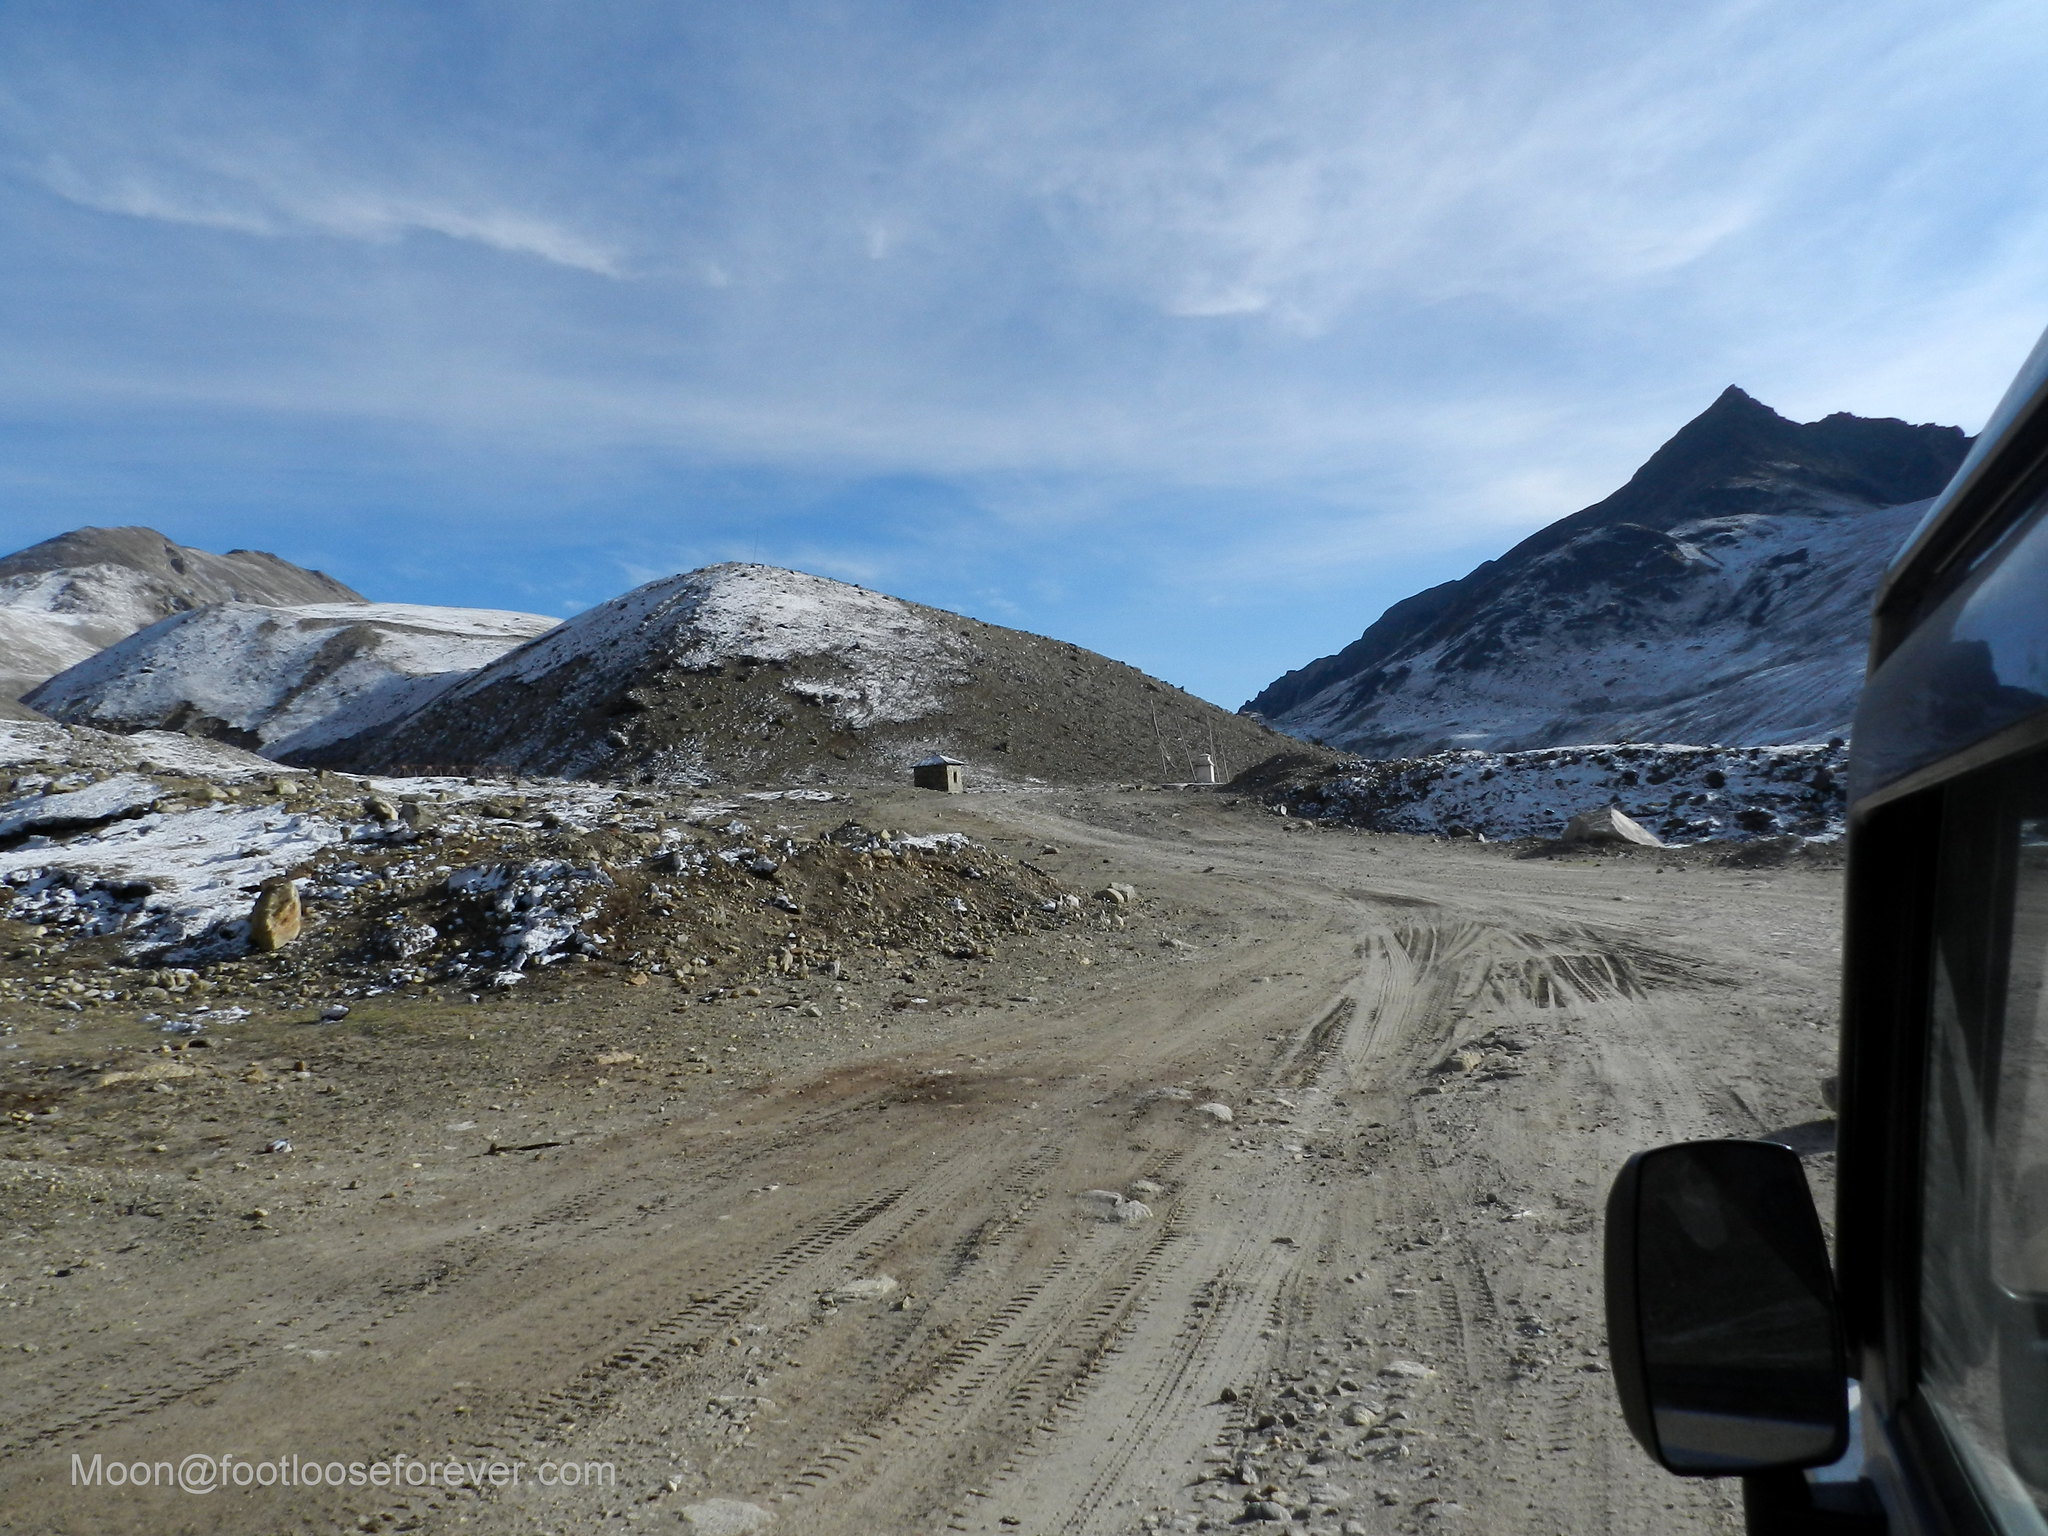 north sikkim, mountain, desert, road